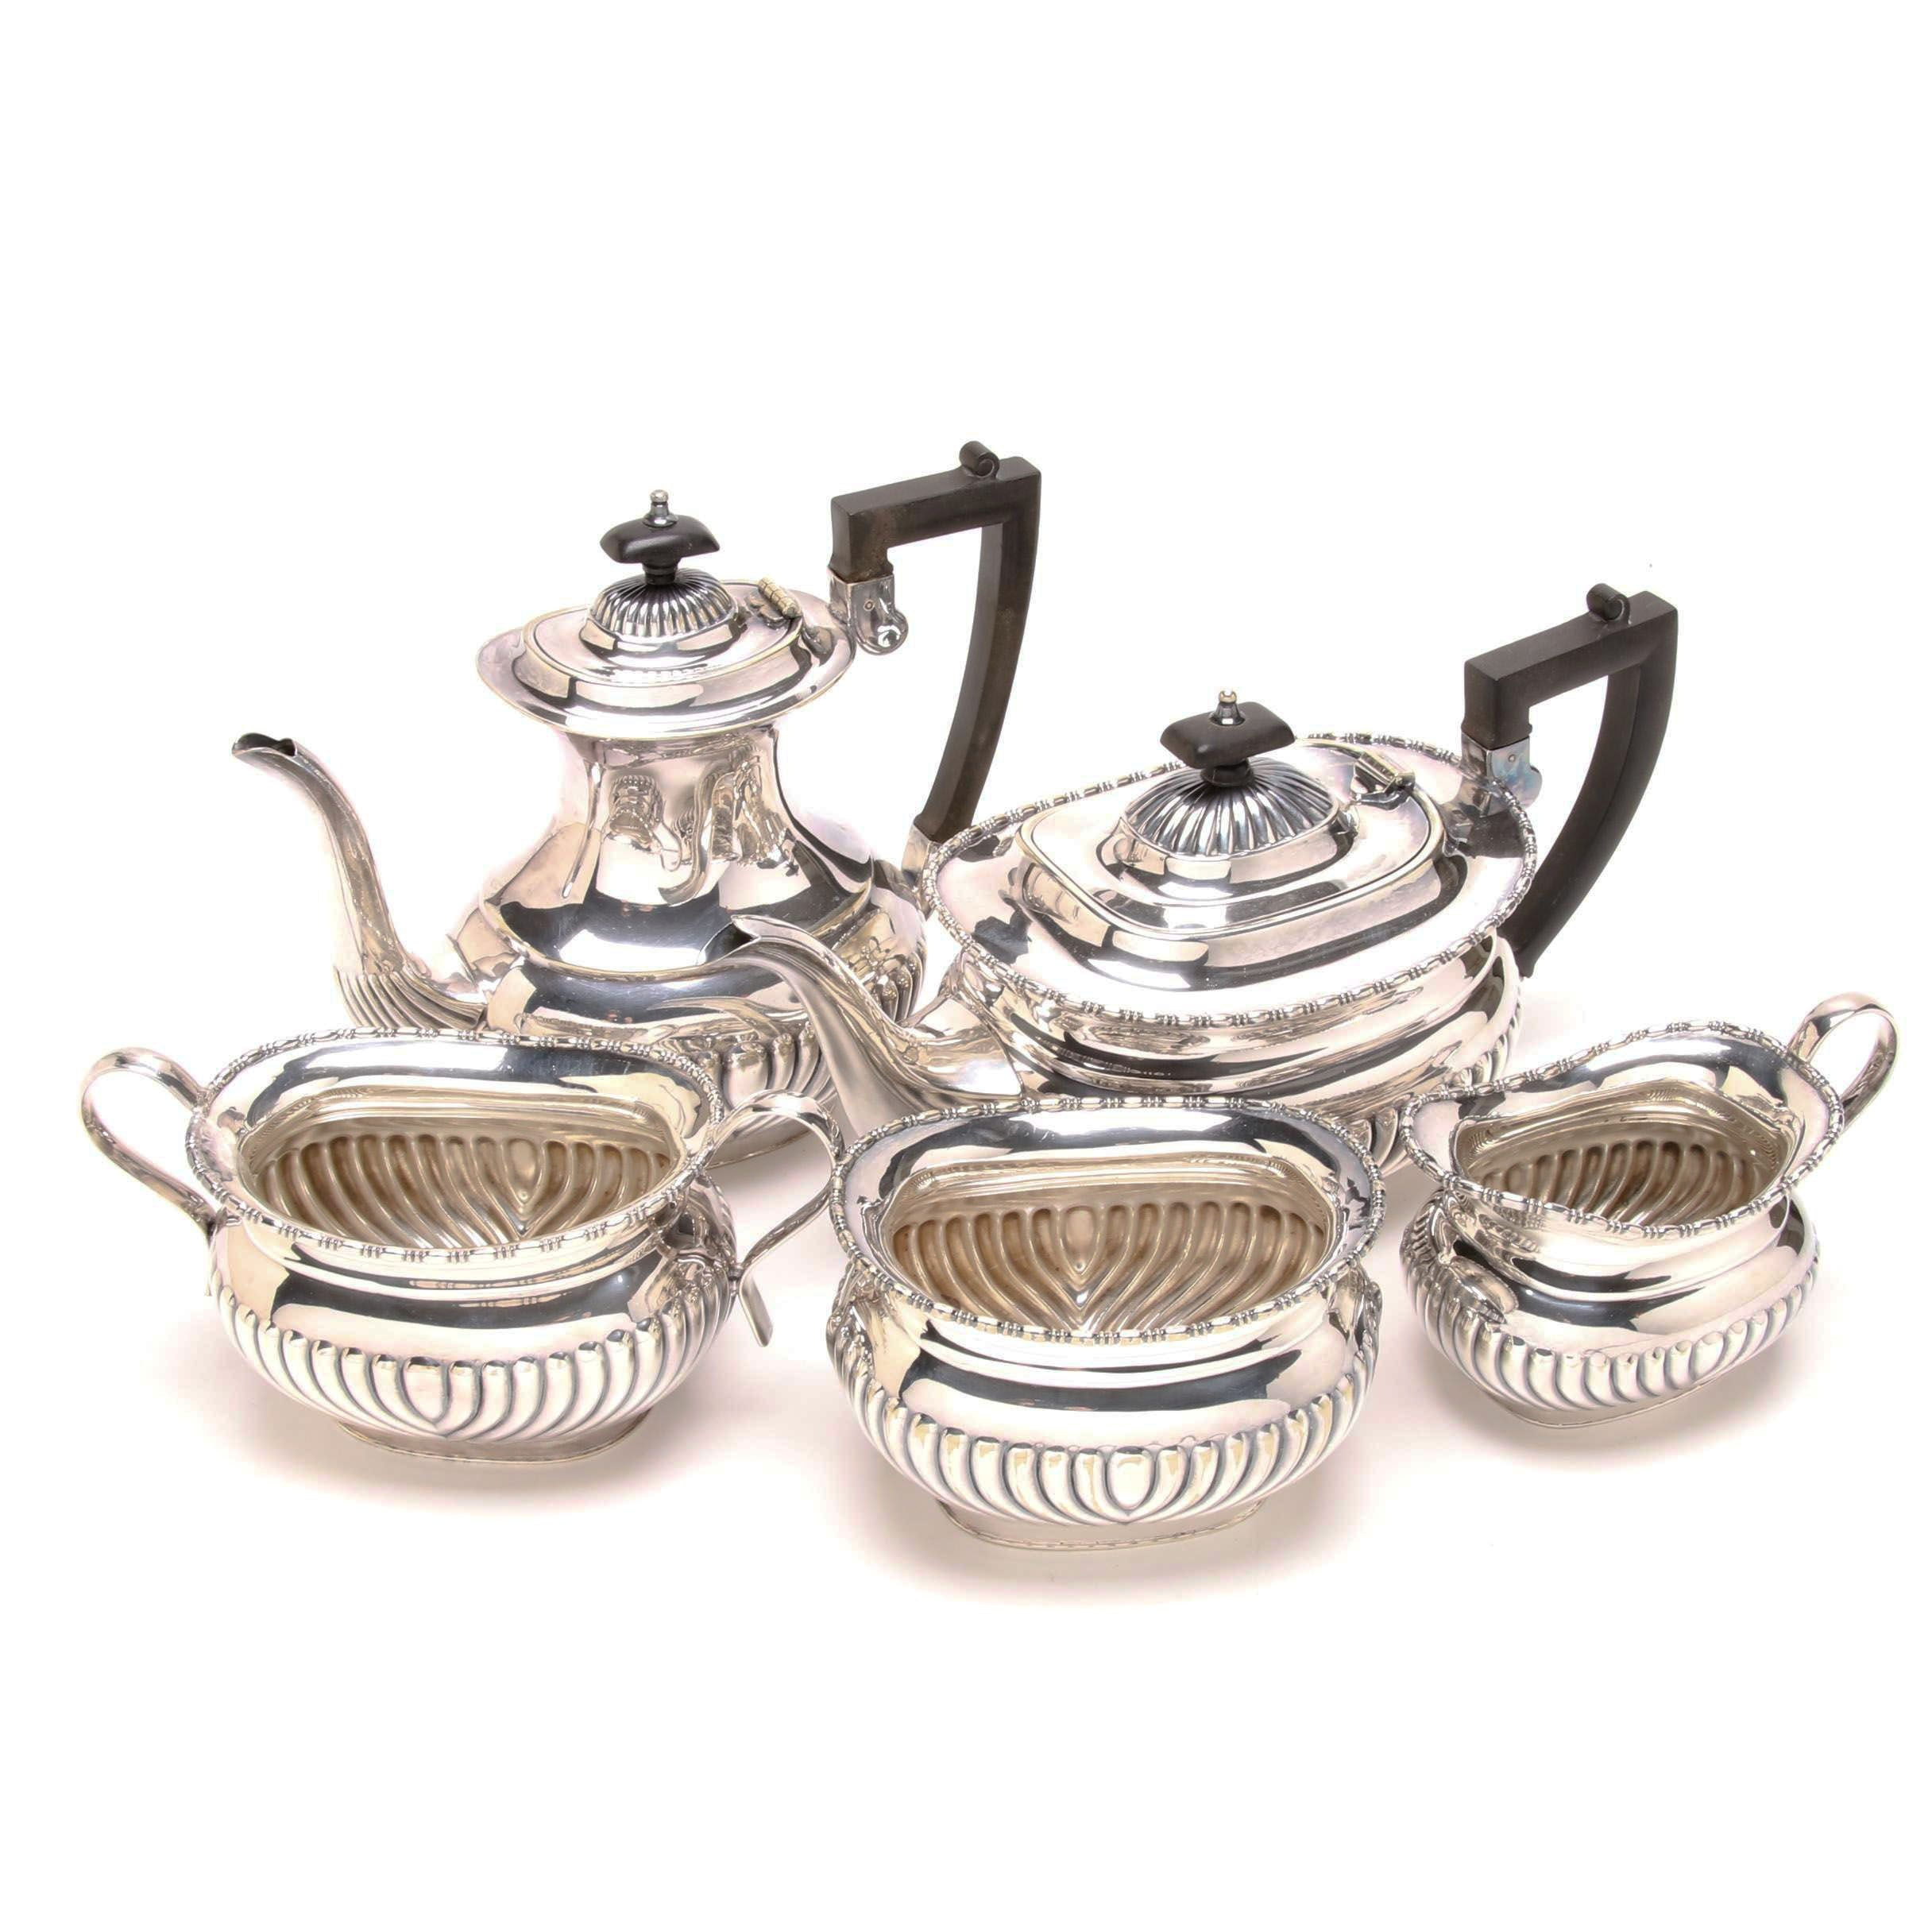 William Adams Sheffield Silver Plate Tea and Coffee Set